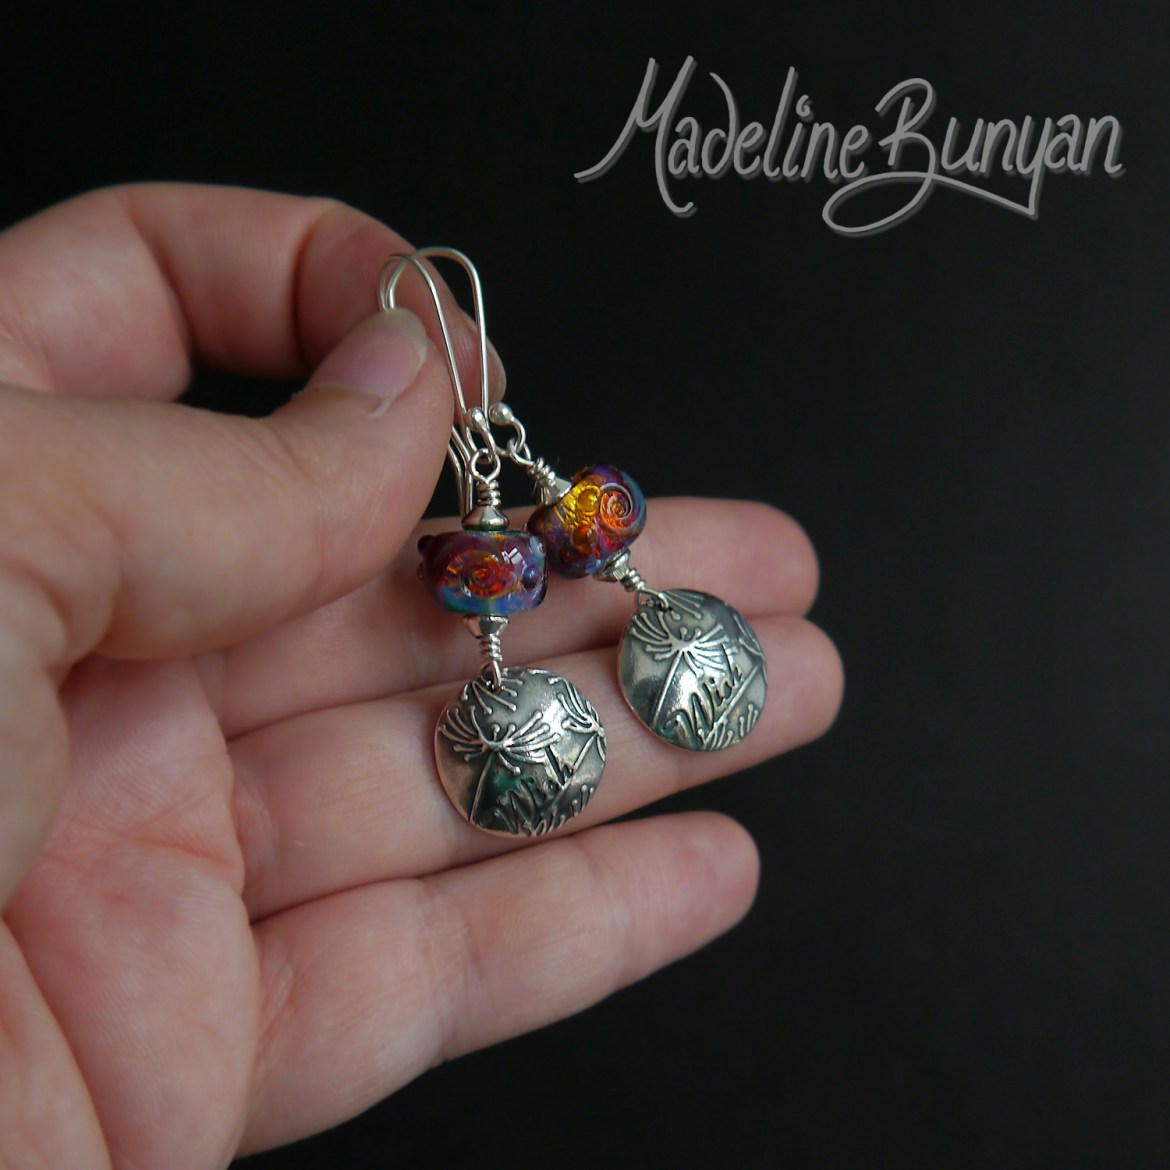 Rainbow Lampwork and Dandelion Wish disc drop earrings with Sterling Silver